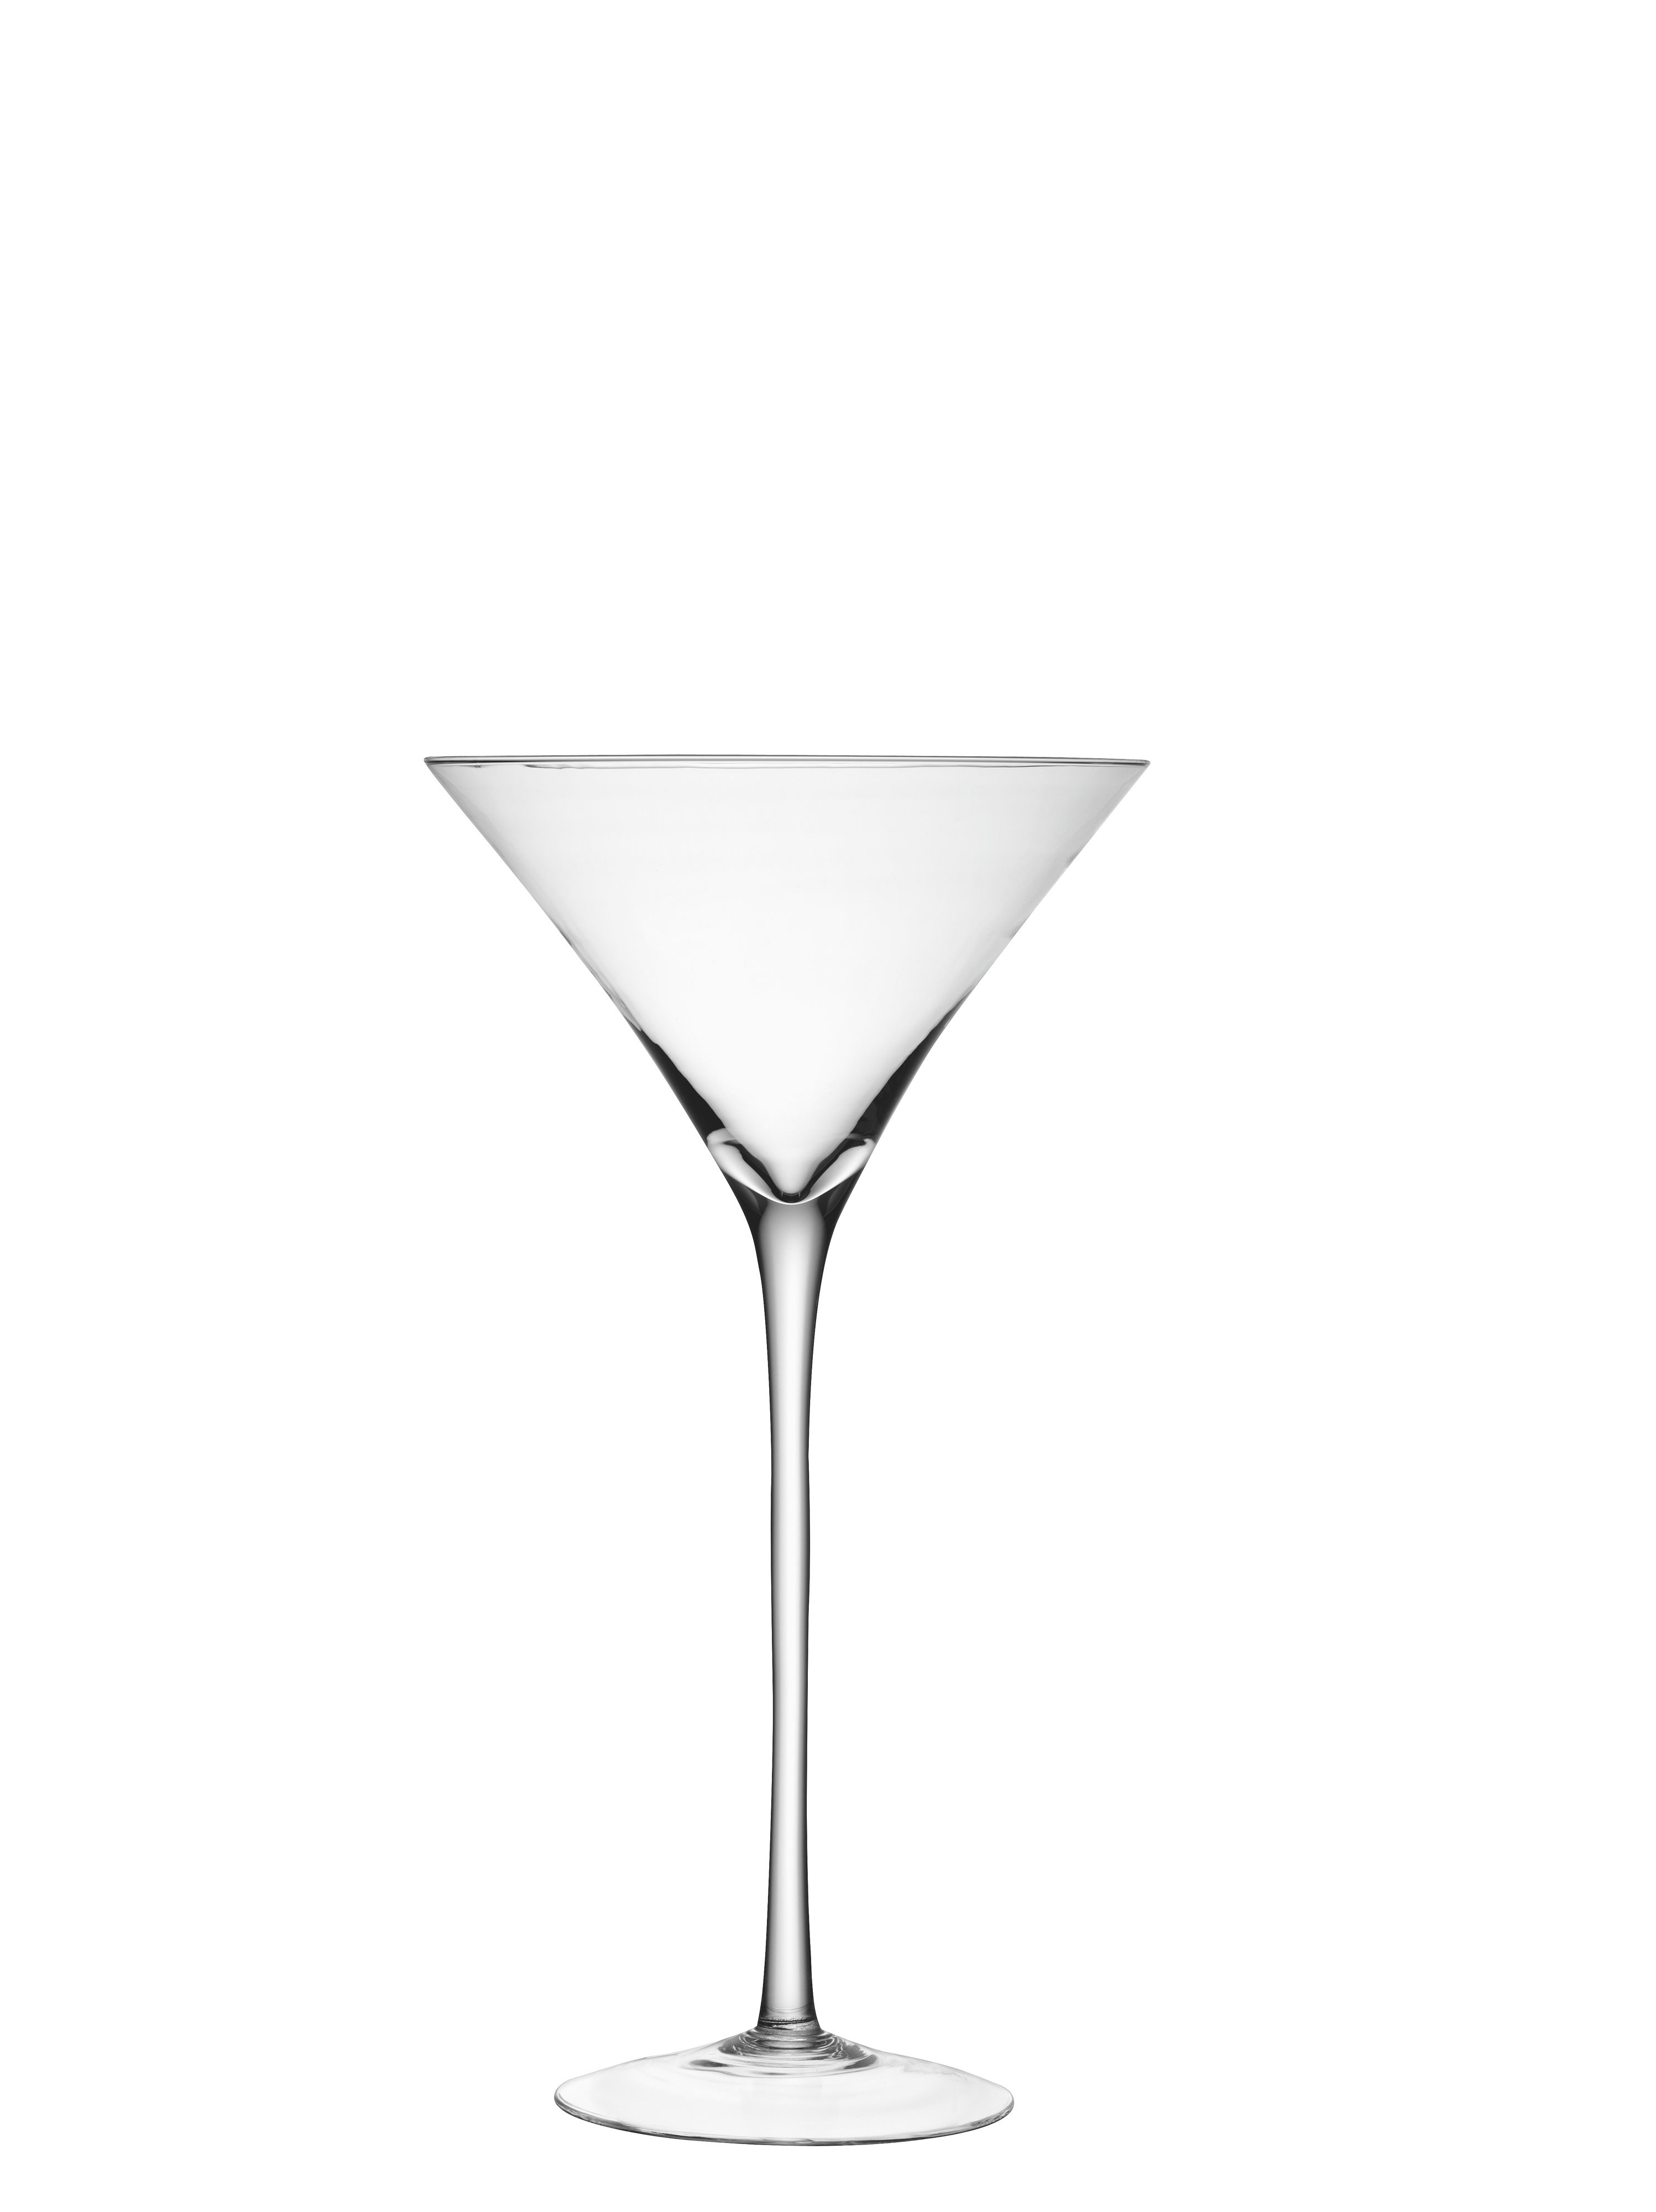 Maxa giant cocktail glass